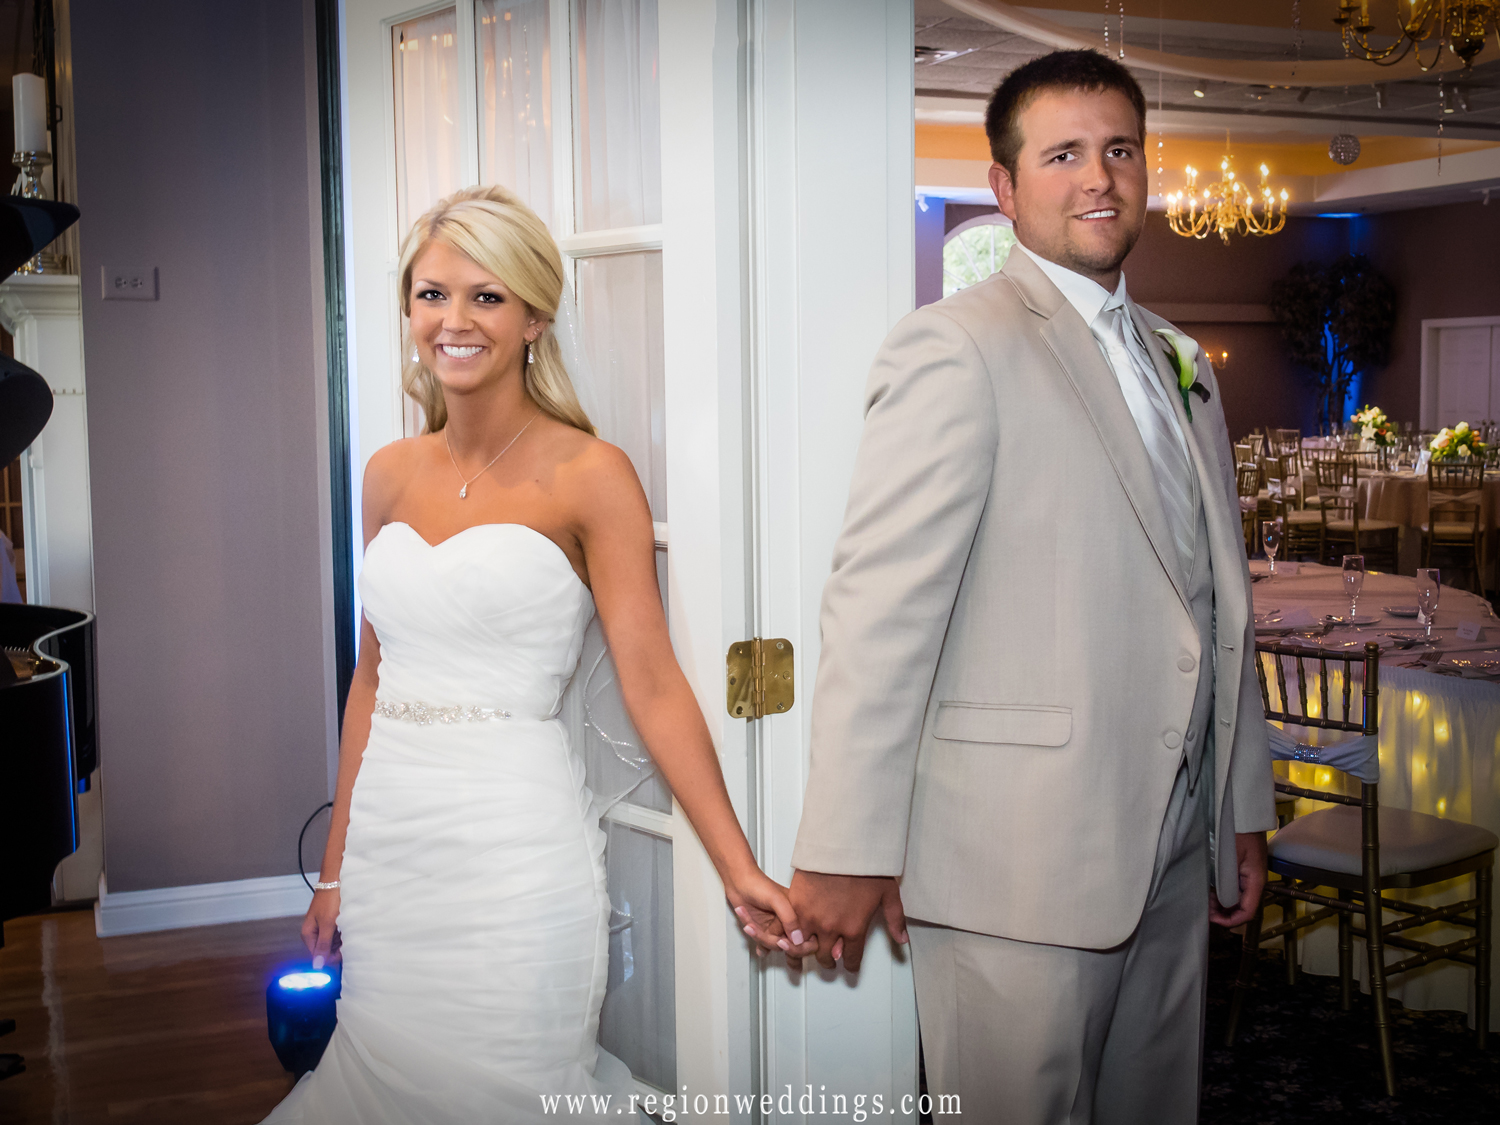 The bride and groom hold hands as they stand at opposite sides of a doorway.